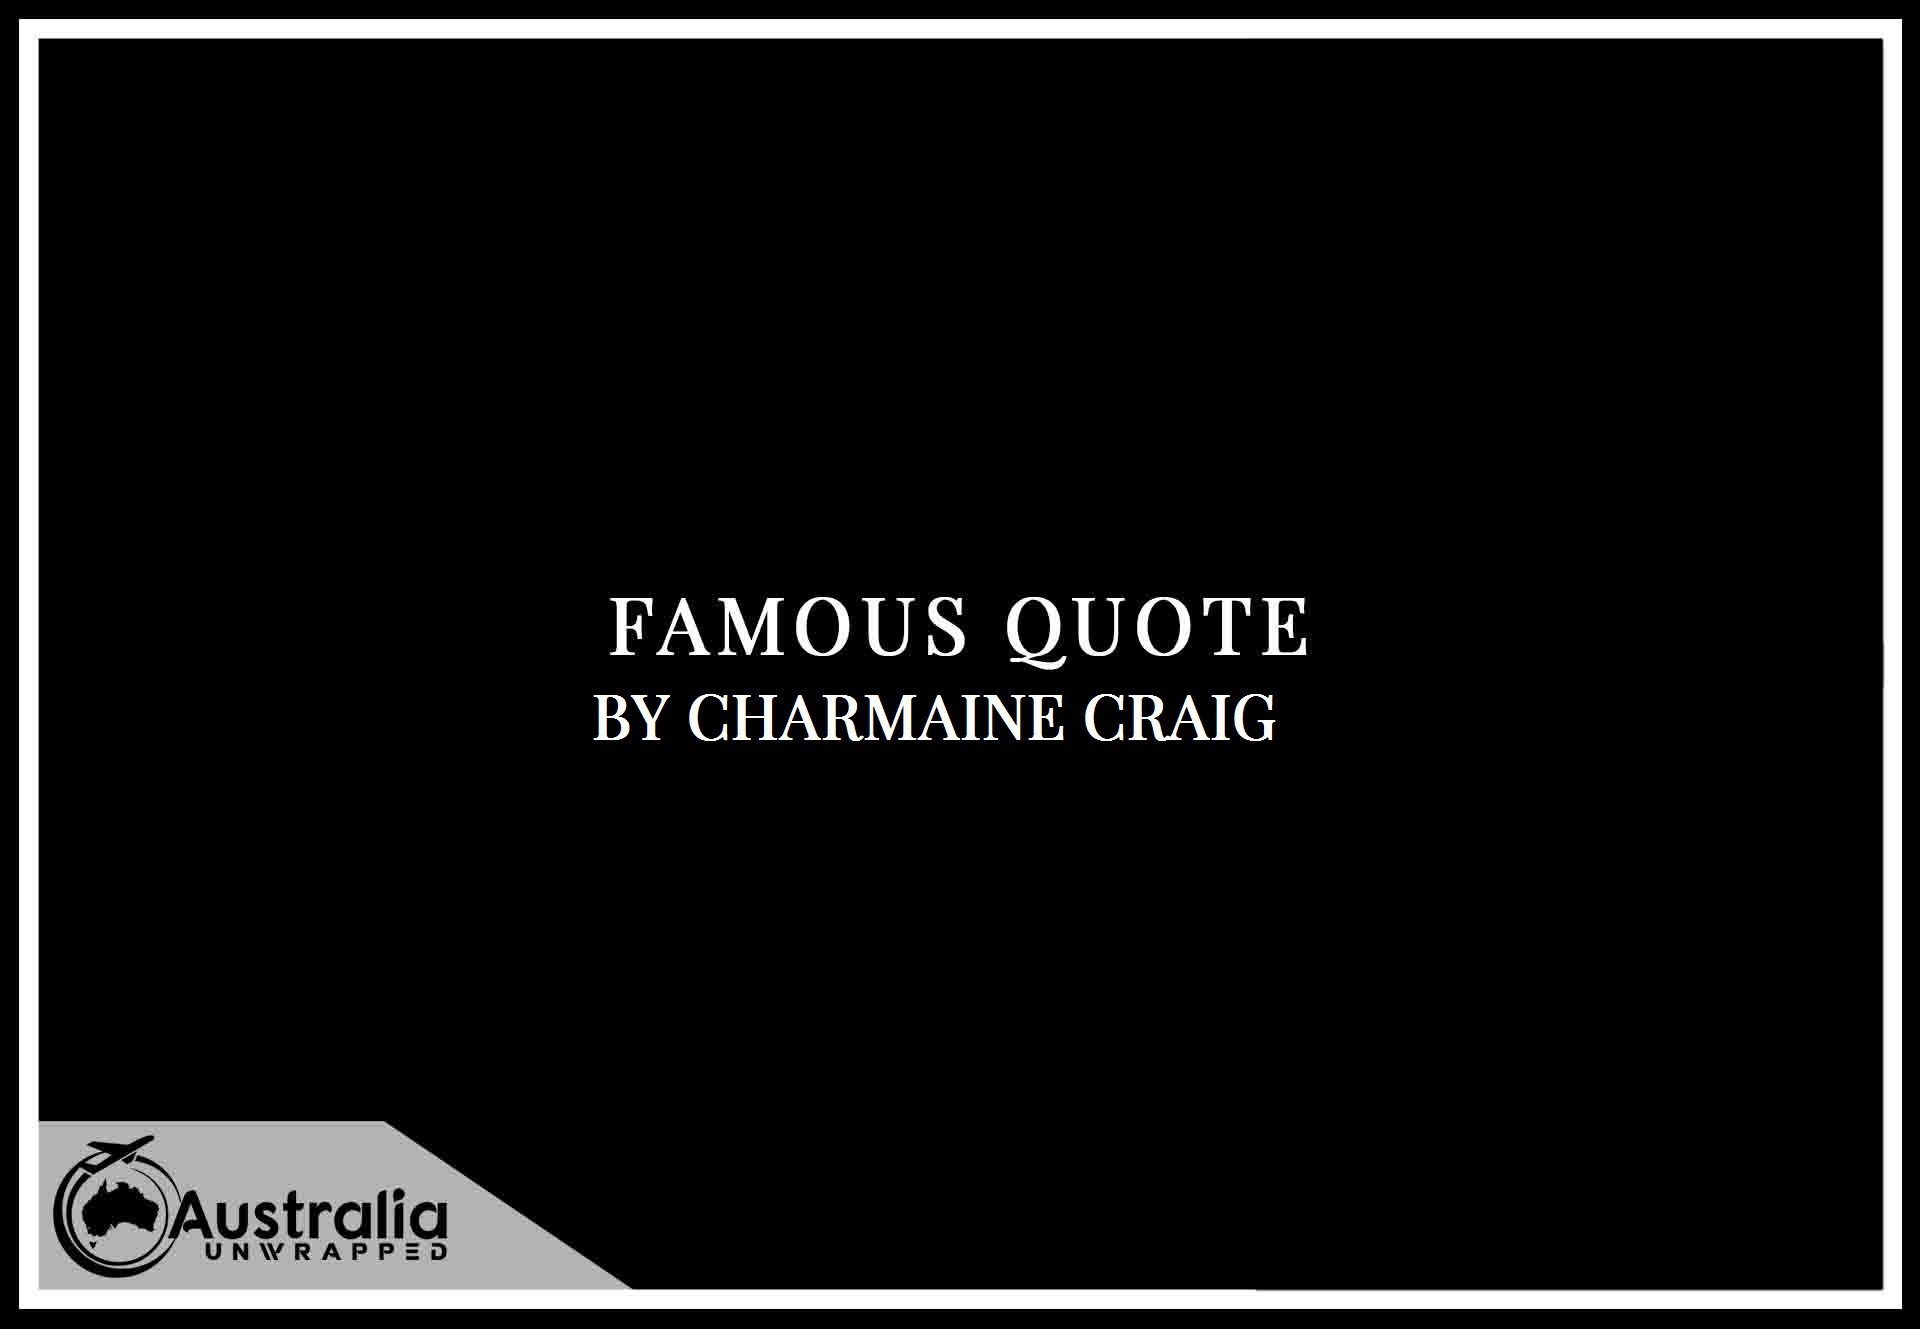 Charmaine Craig's Top 1 Popular and Famous Quotes